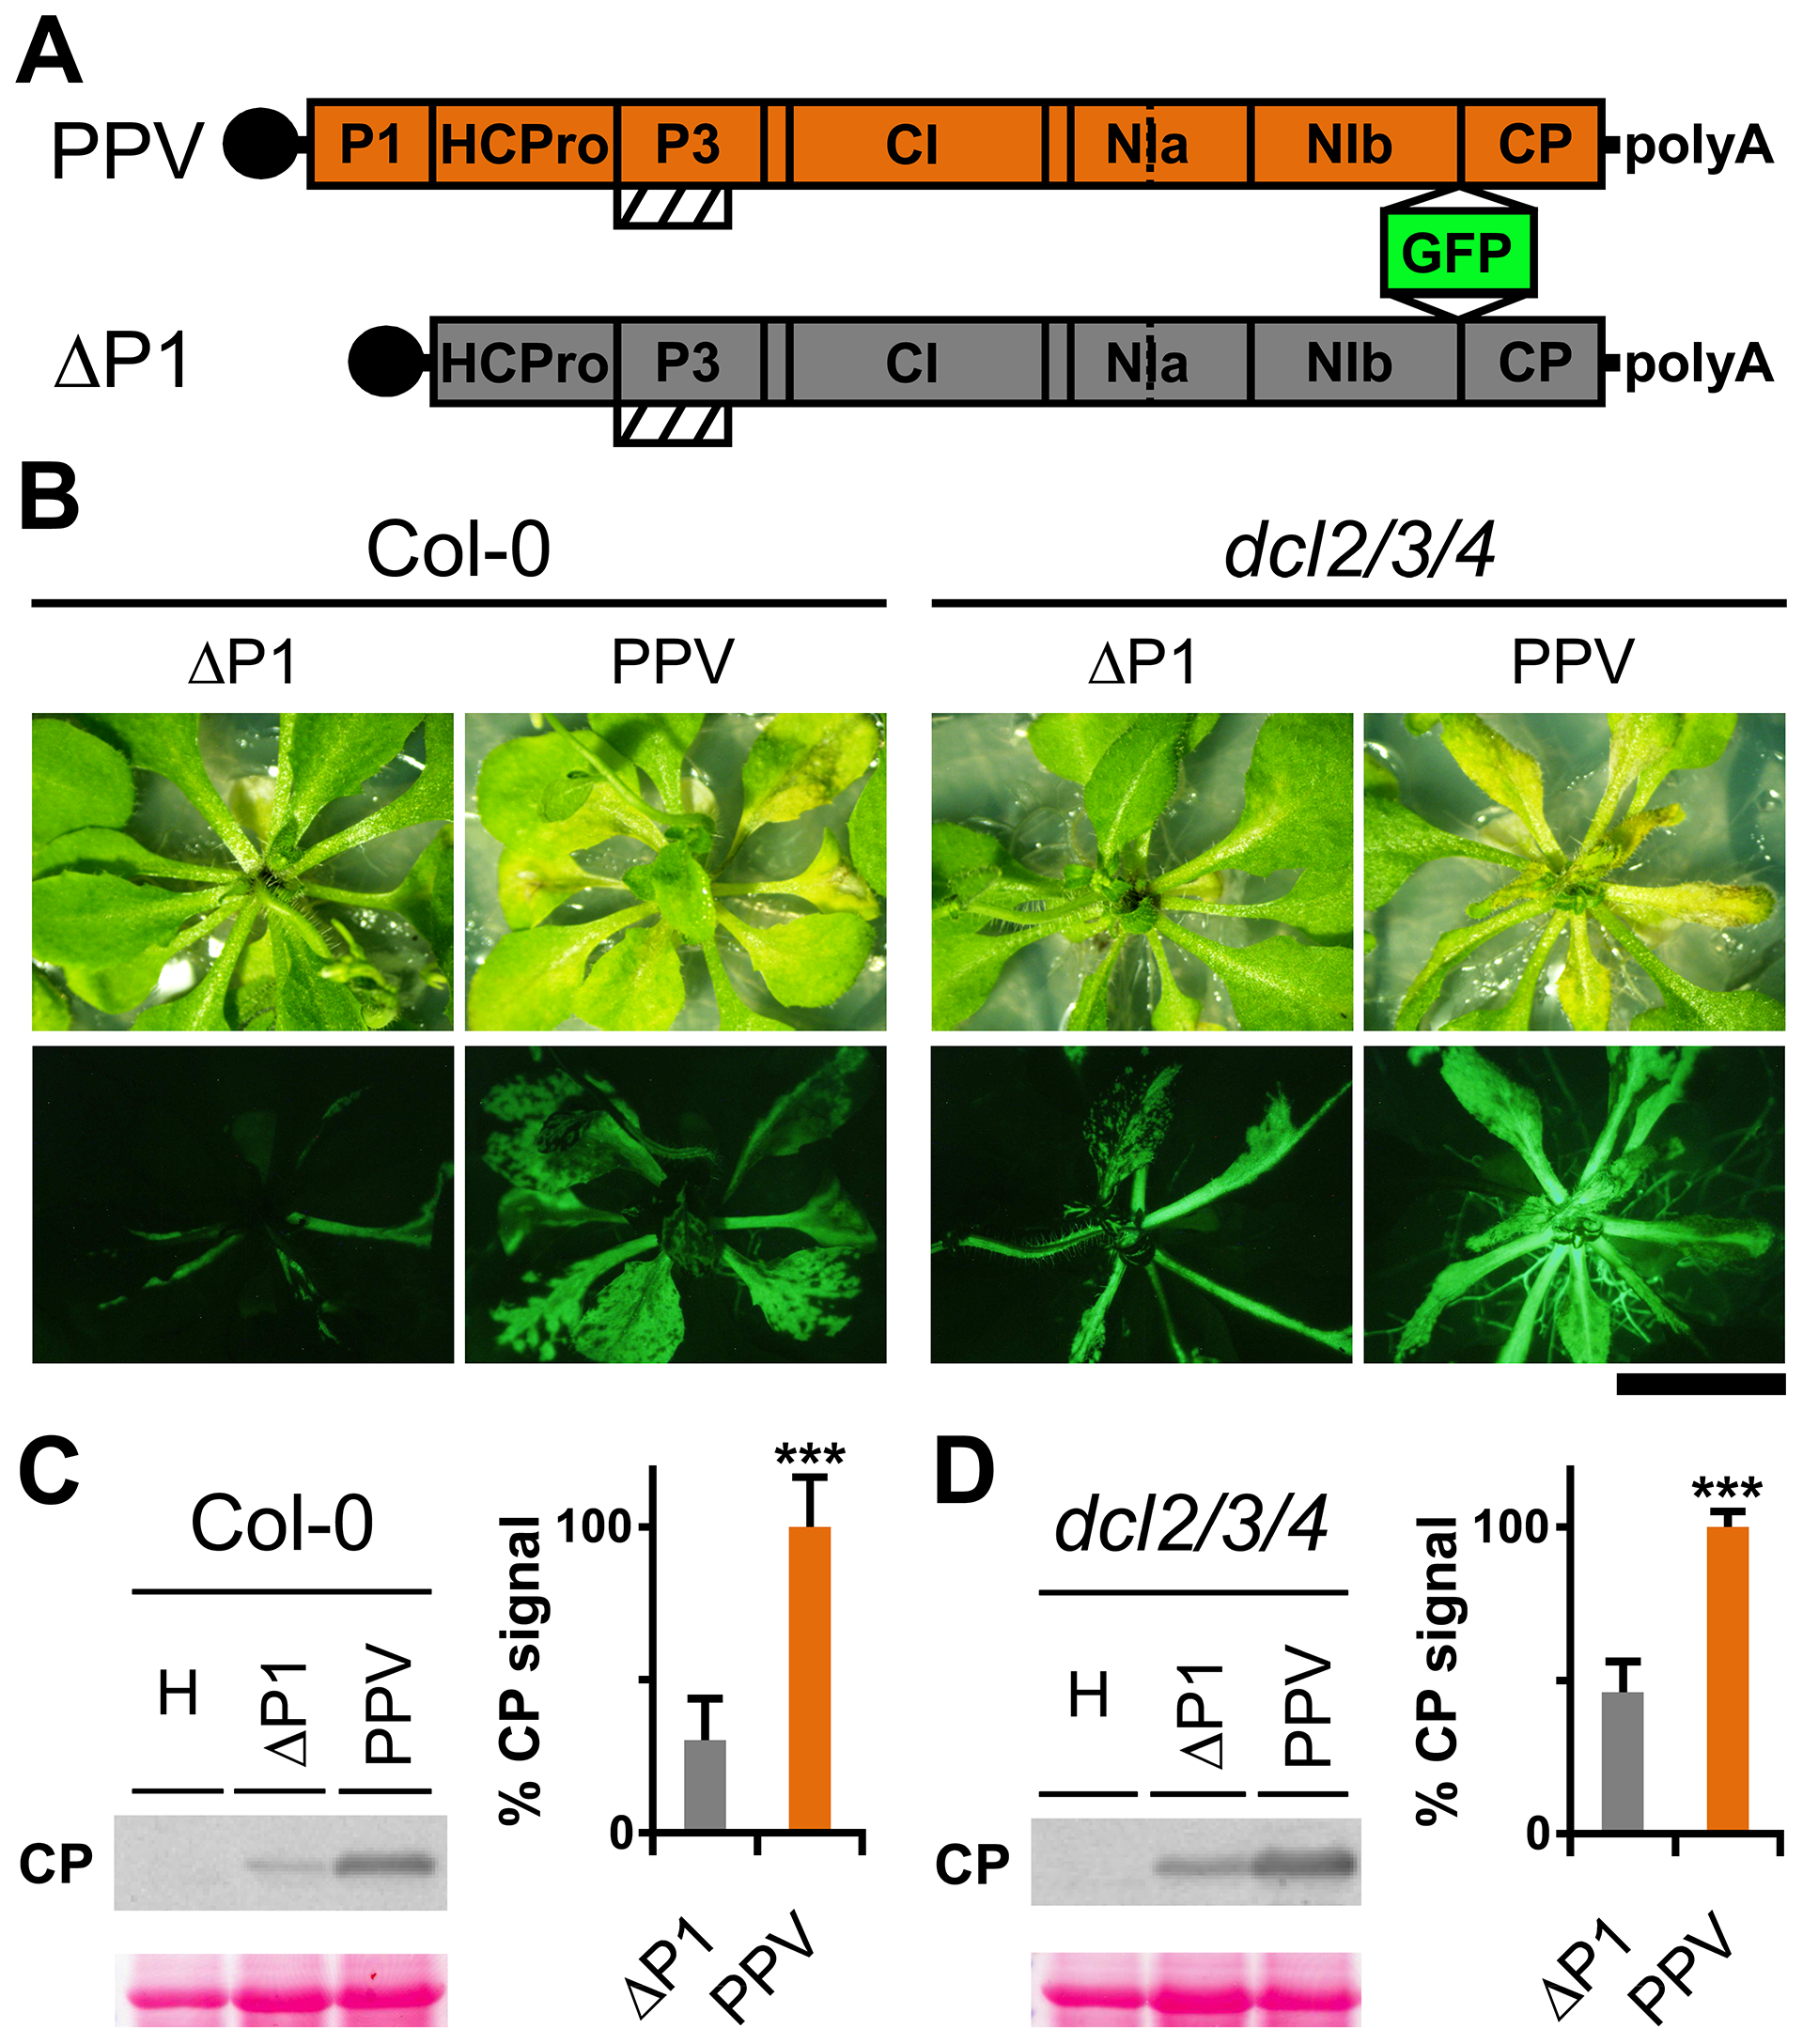 <i>Arabidopsis</i> mutant plants with defective RNA silencing pathways fail to rescue PPV ΔP1 amplification defects.